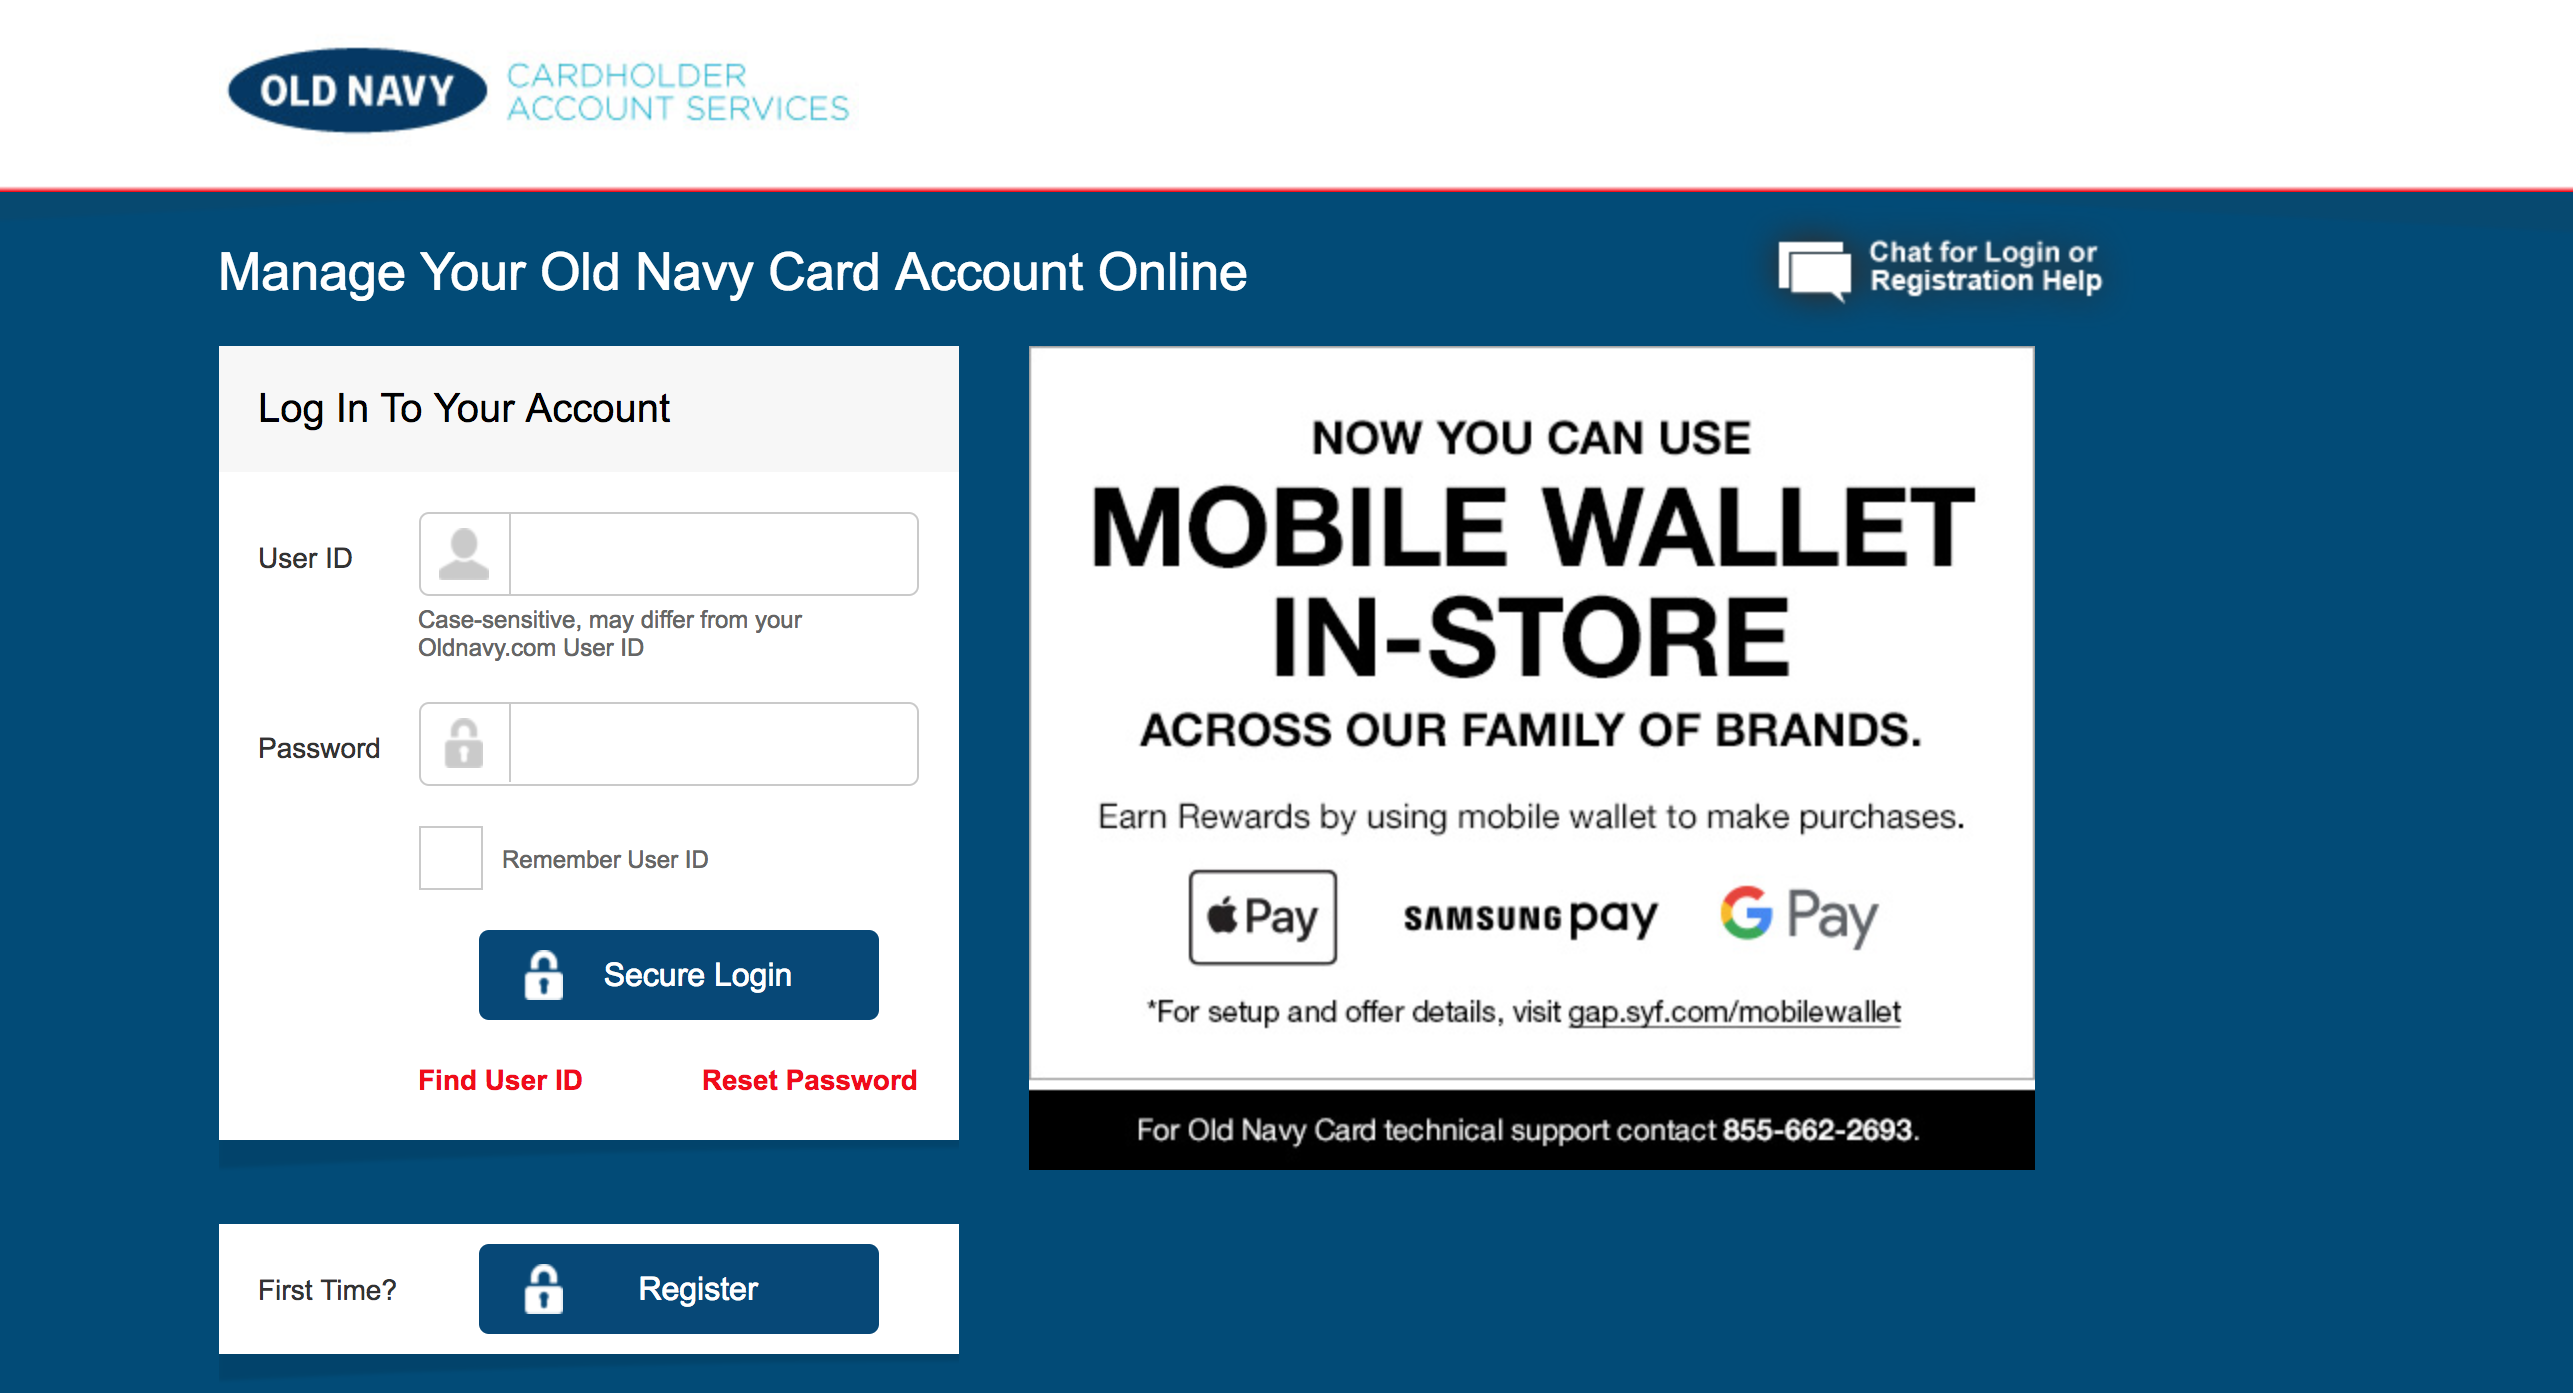 Old Navy Credit Cards & Rewards Program – Is It Worth It? [2019]